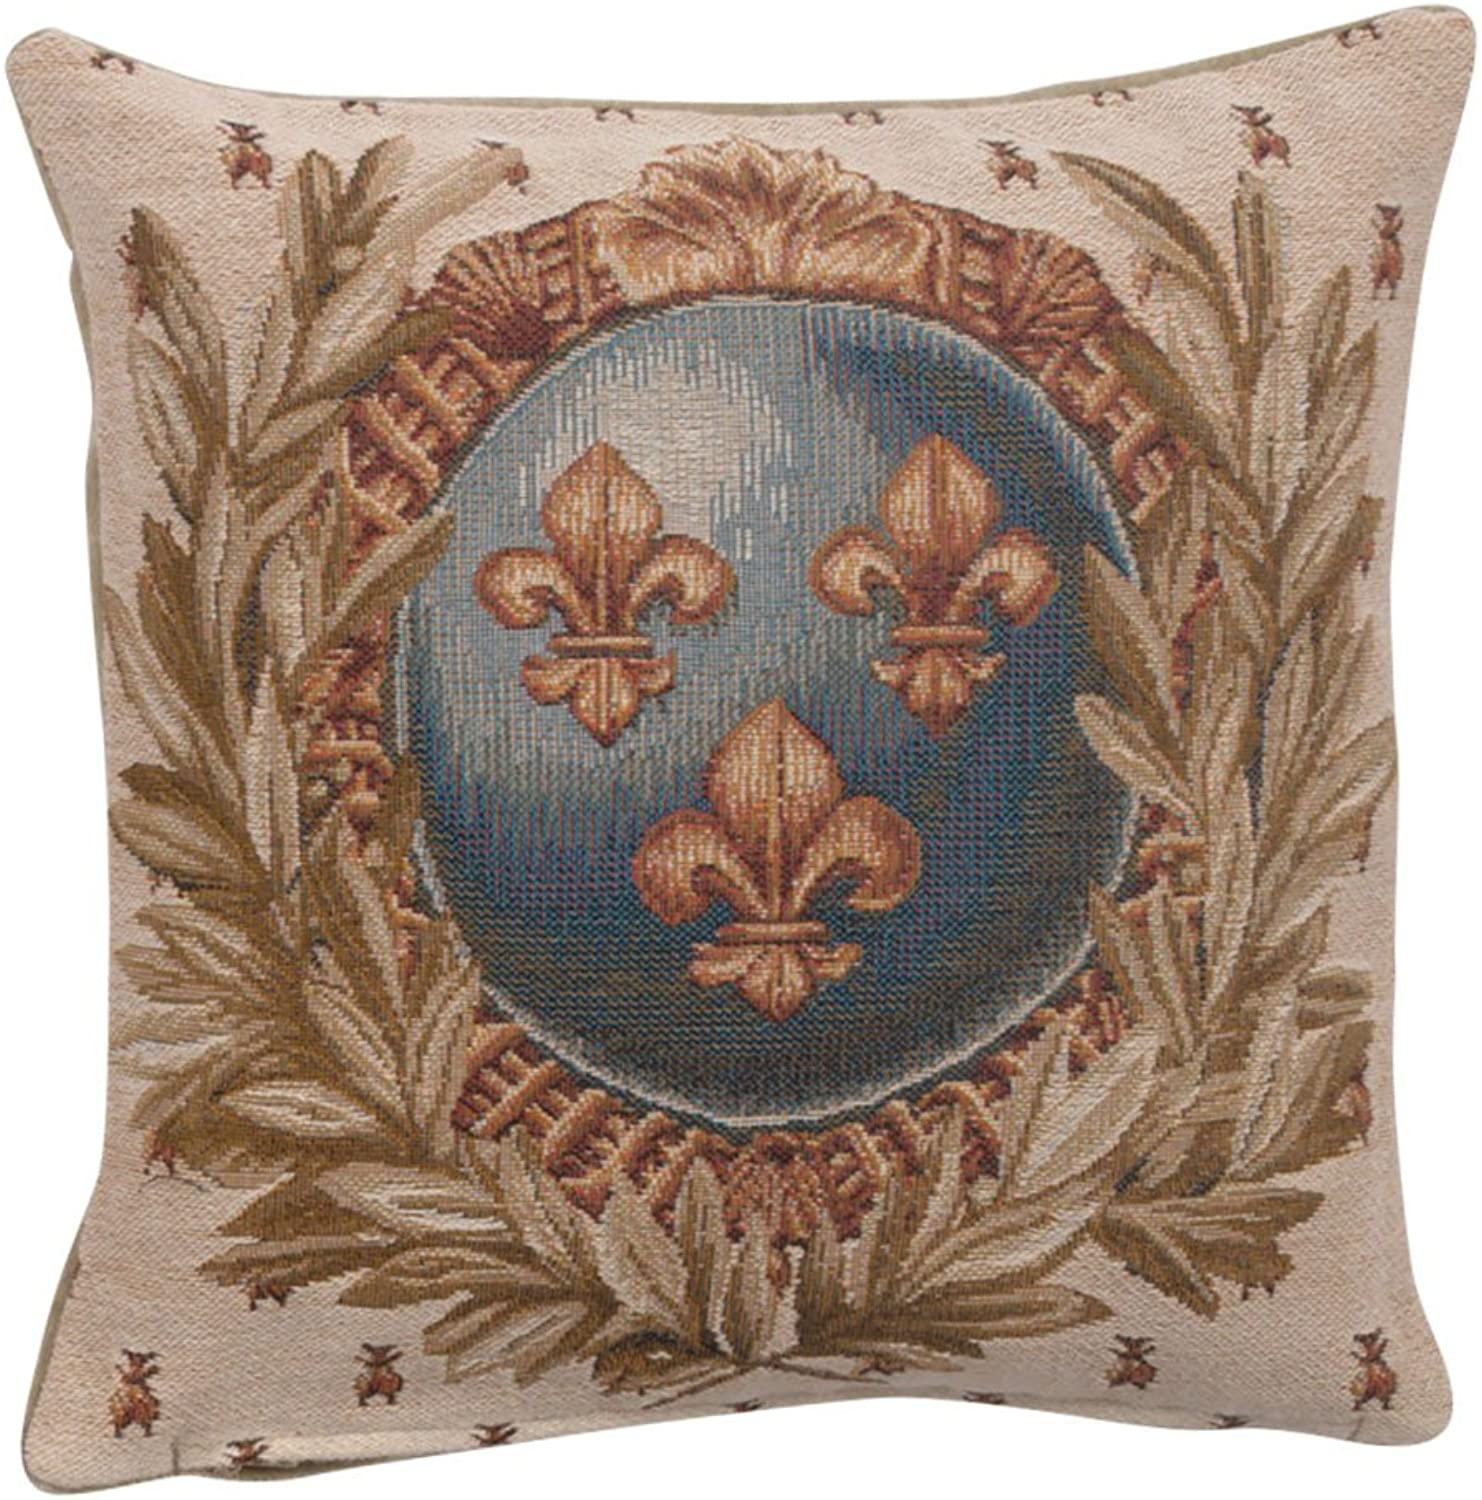 Jacquard woven French tapestry, Empire Lys Flower. 14 x 14  designer decorative accent cushion covers. Hand finished throw pillows for couch and sofas.